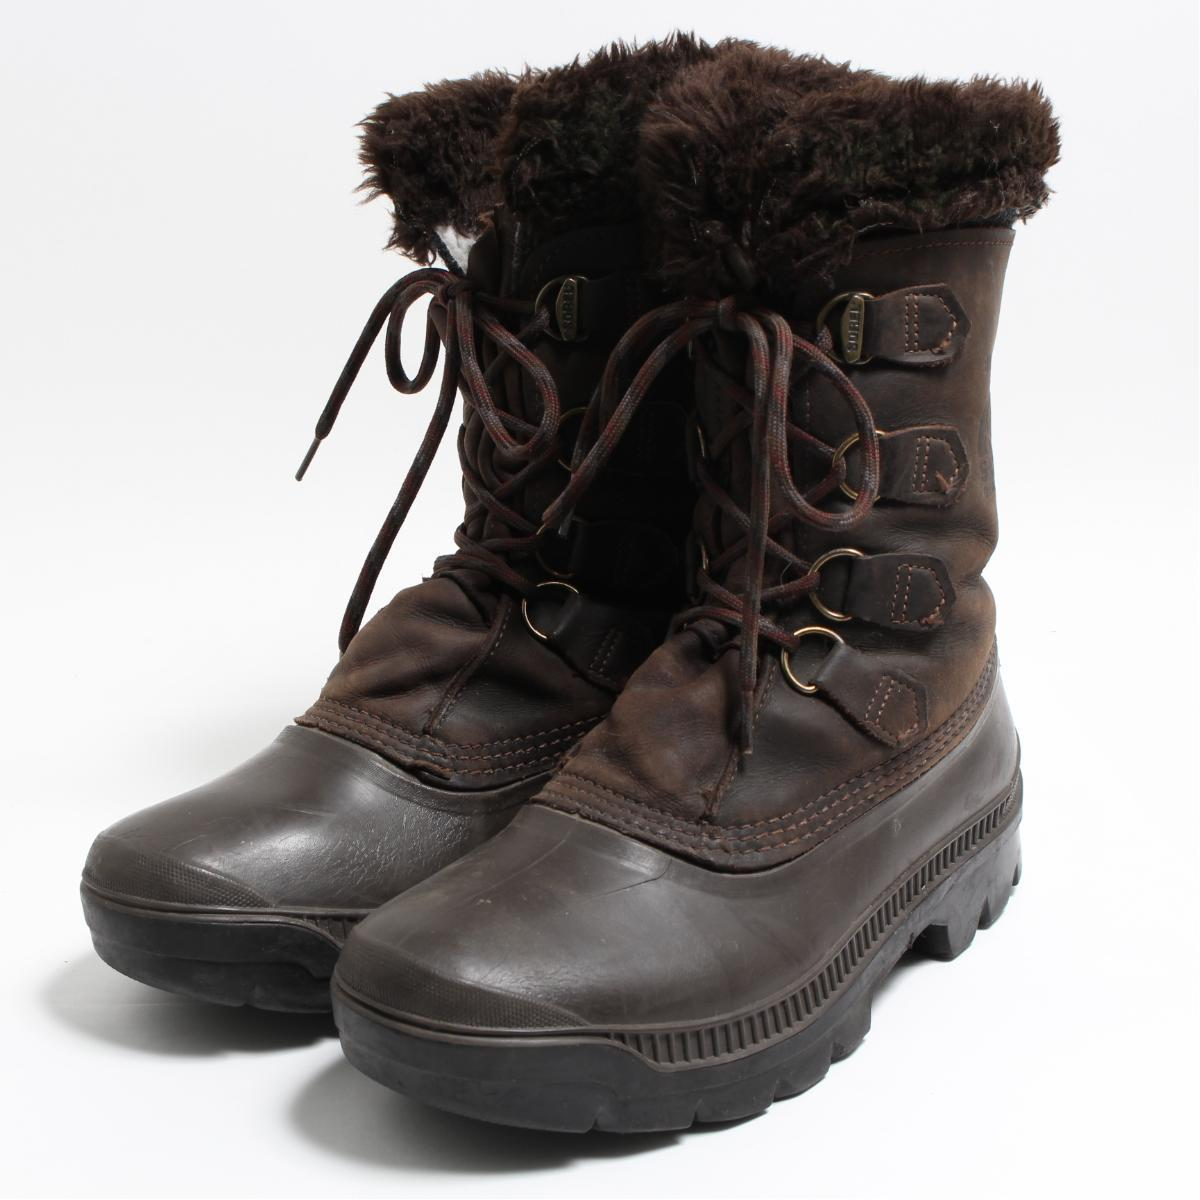 brand new c8693 3164d Product made in Sorrel SOREL BUFFALO winter boots Canada 8 men's 26.0cm  /boo0053